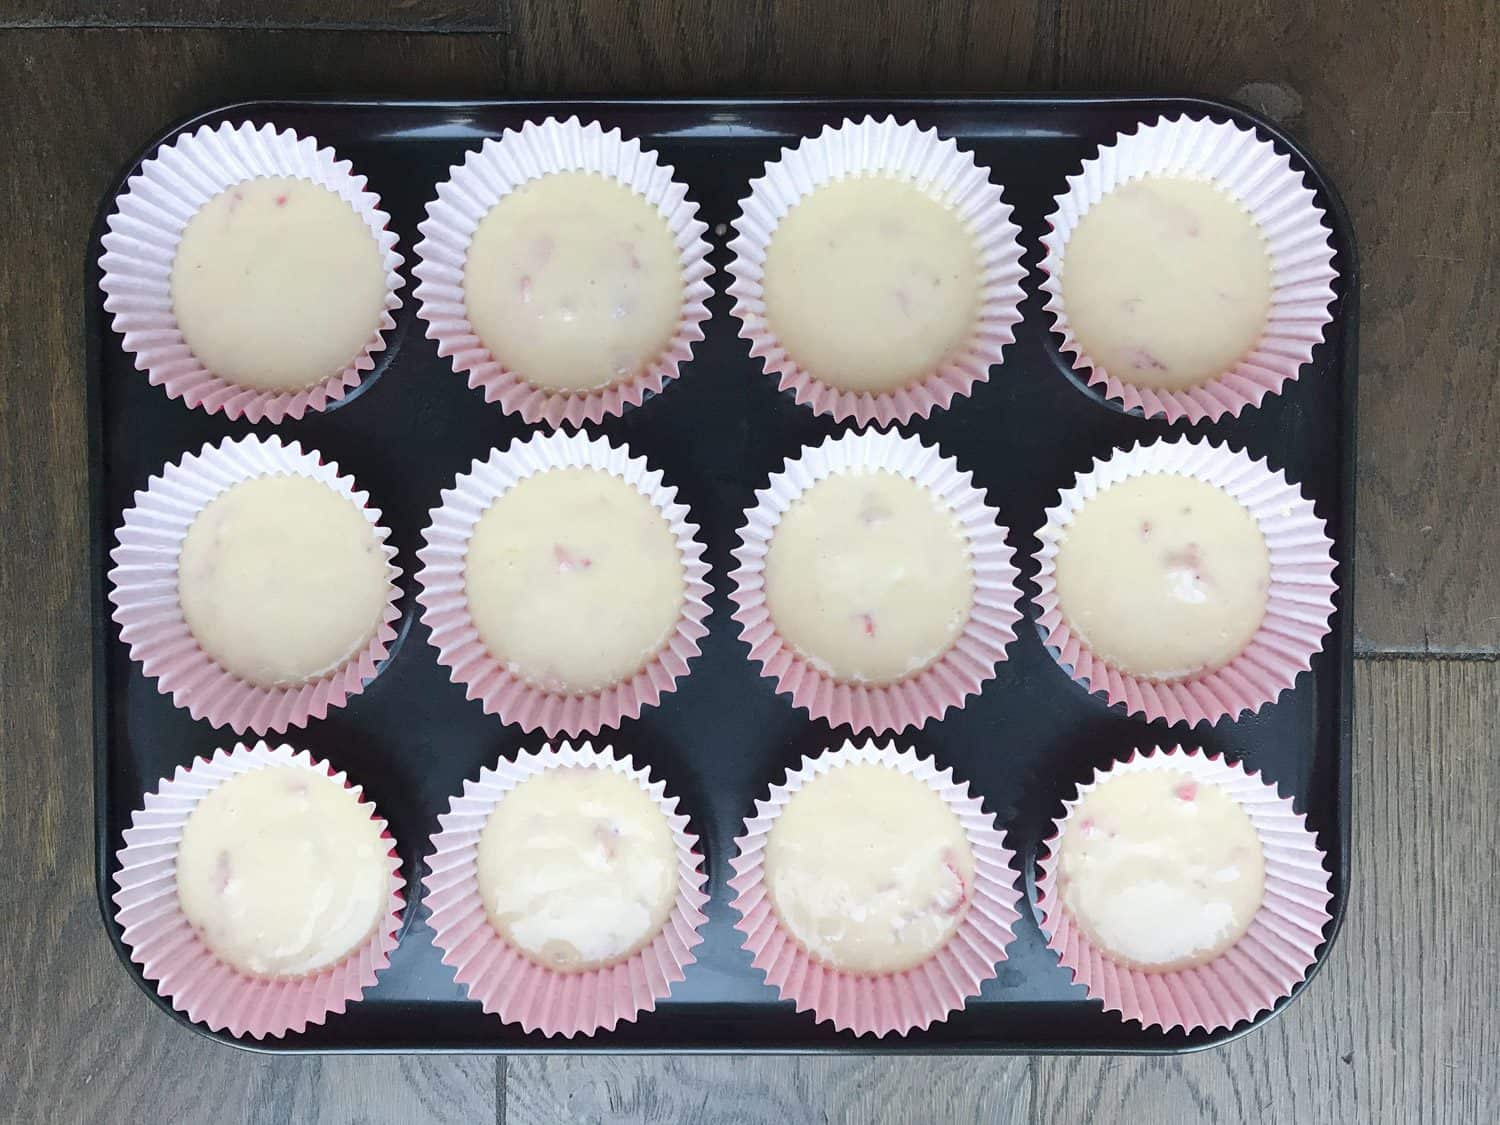 A baking tray with 12 cupcake cases filled half full